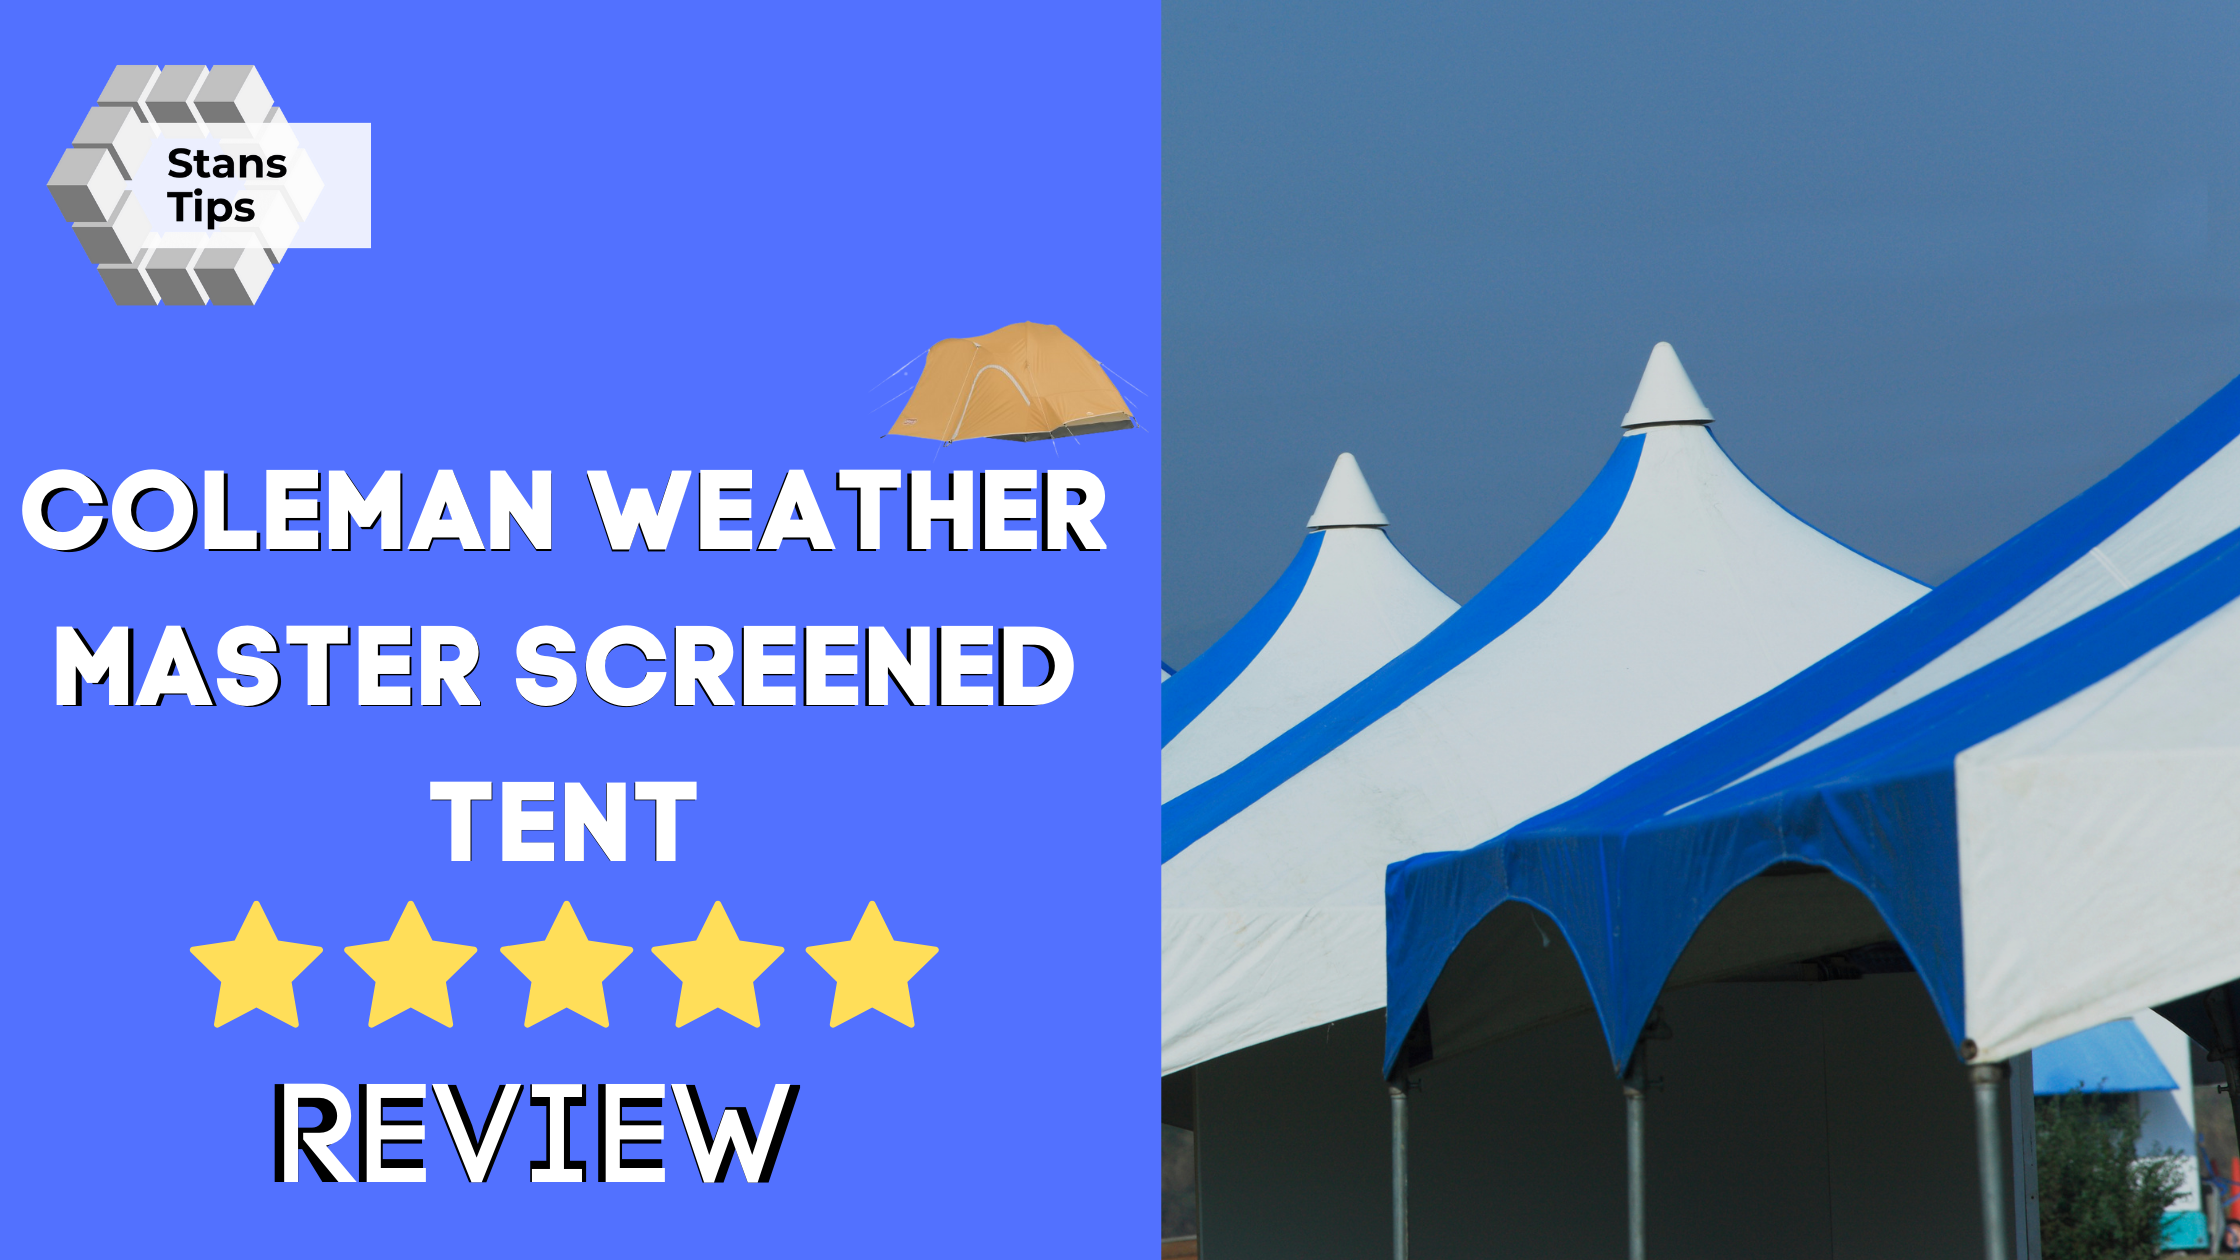 Coleman Weather Master Screened Tent Review